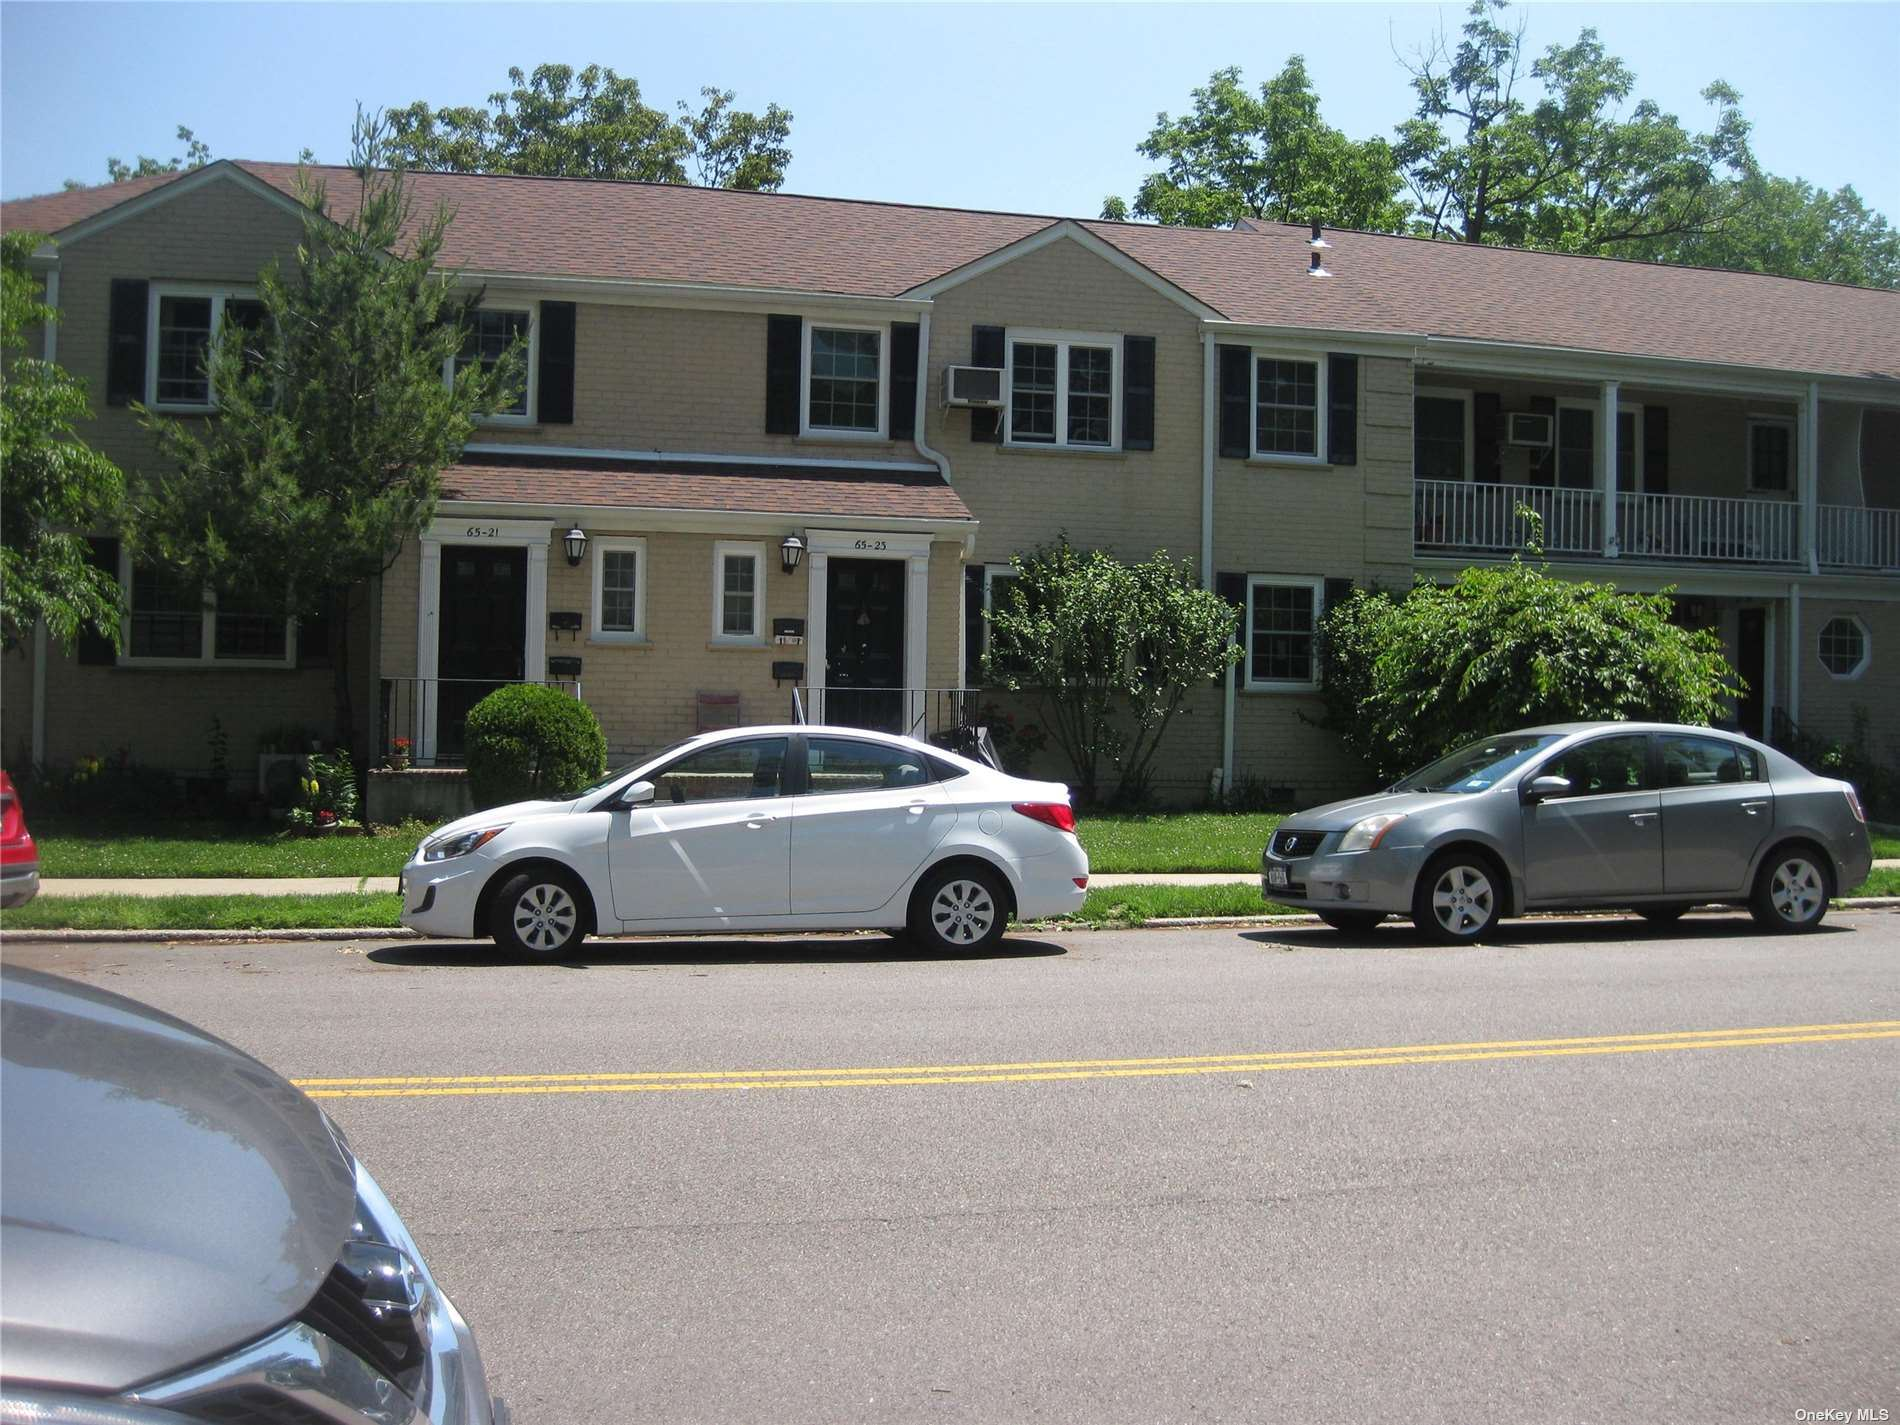 65-23 223rd Place #A, Bayside, NY 11364 - MLS#: 3319416